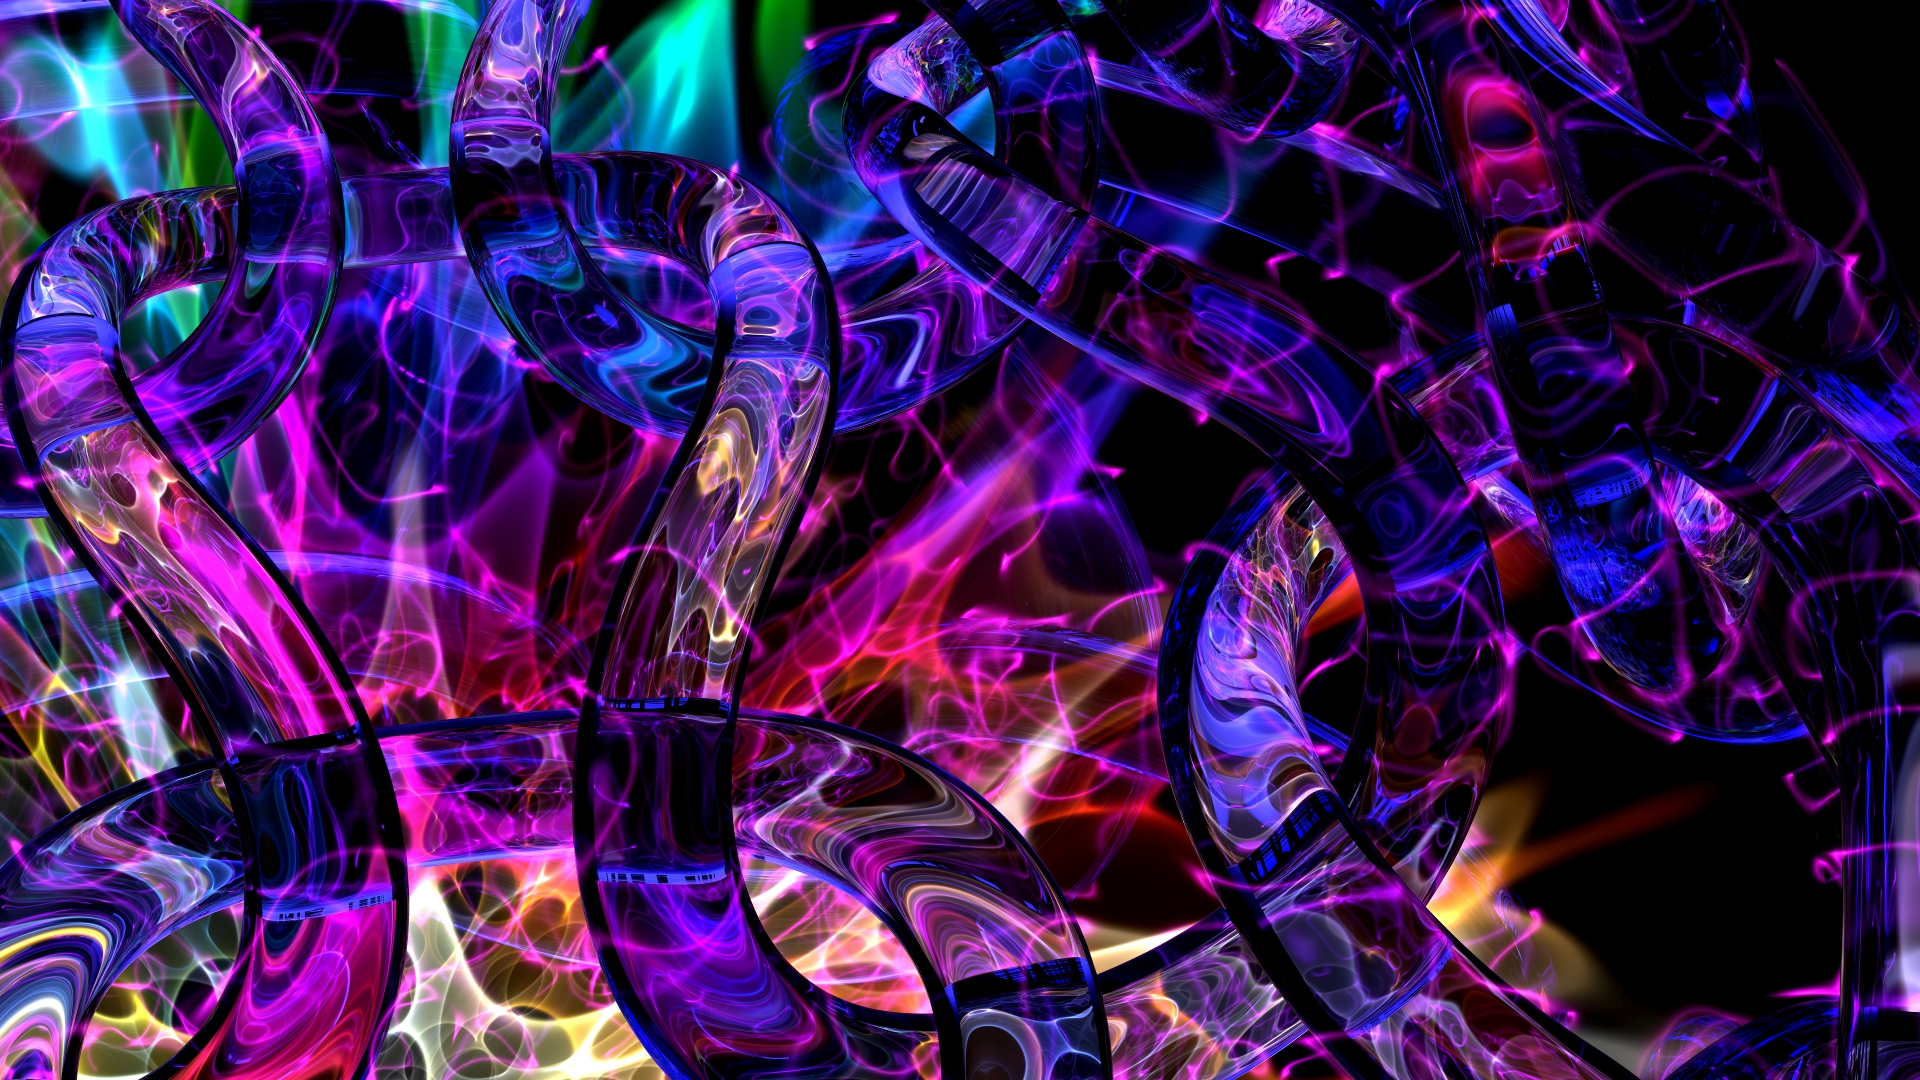 Sokilin design wallpapers trippy wallpapers hd - Artist Trippy Unknown Desktop Wallpapers Hd Free 374759